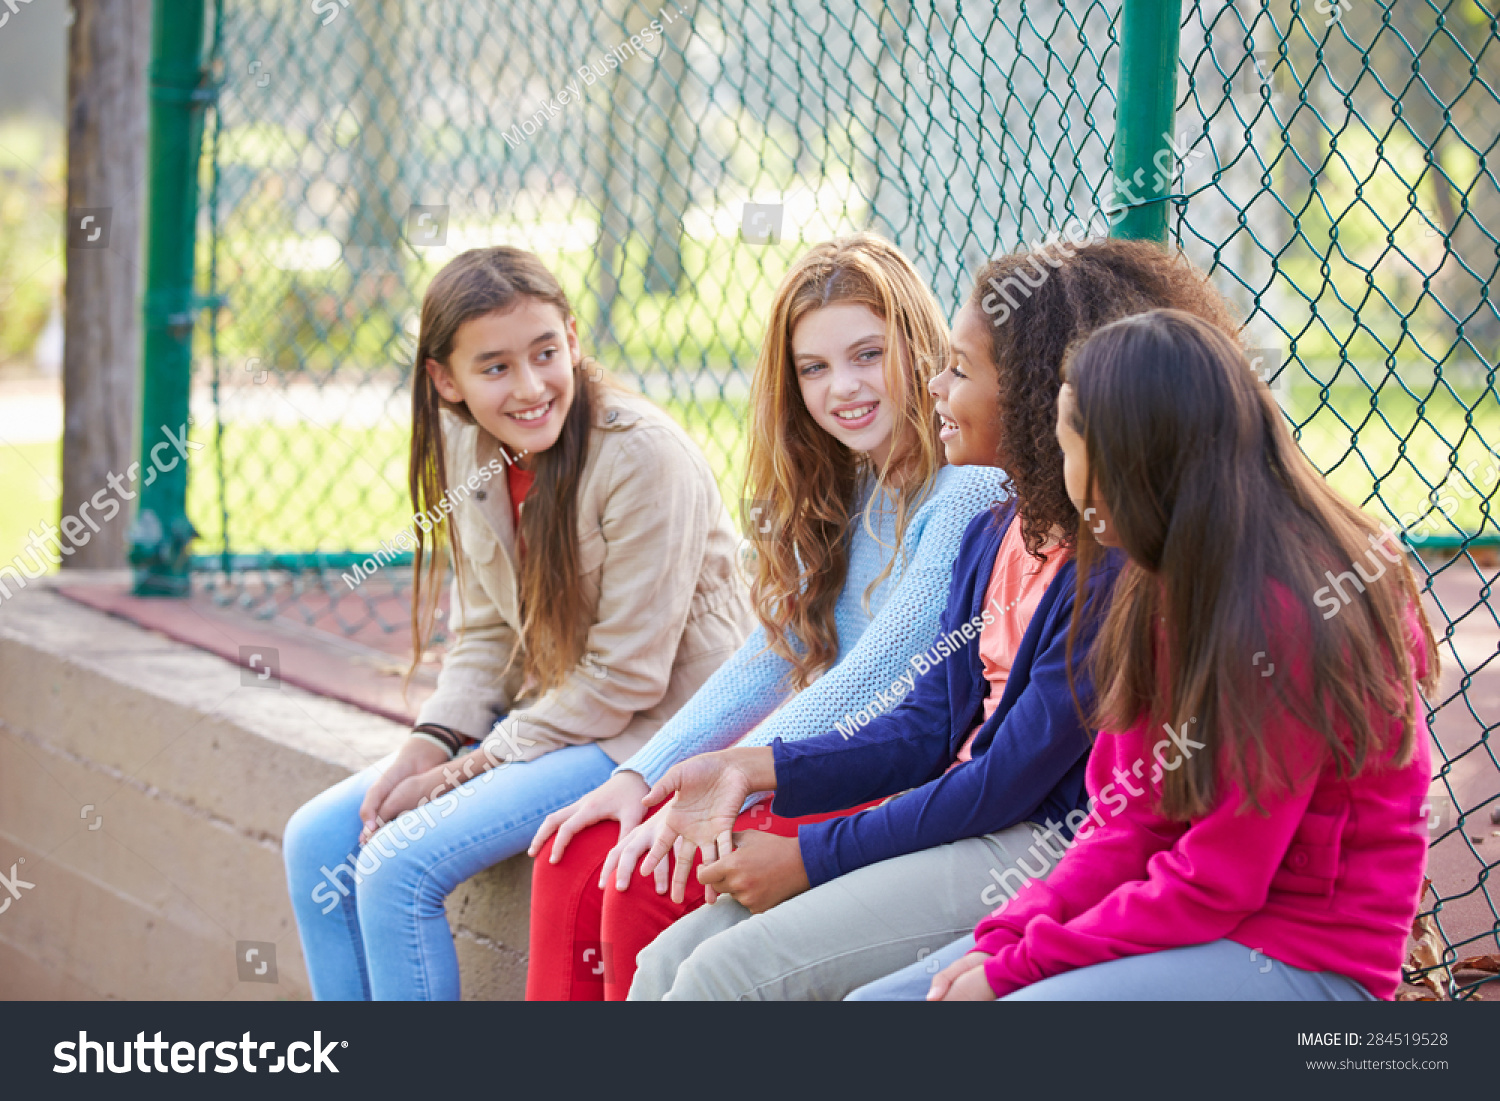 Four Young Girls Hanging Out Together In Park Stock Photo 284519528 : Shutterstock